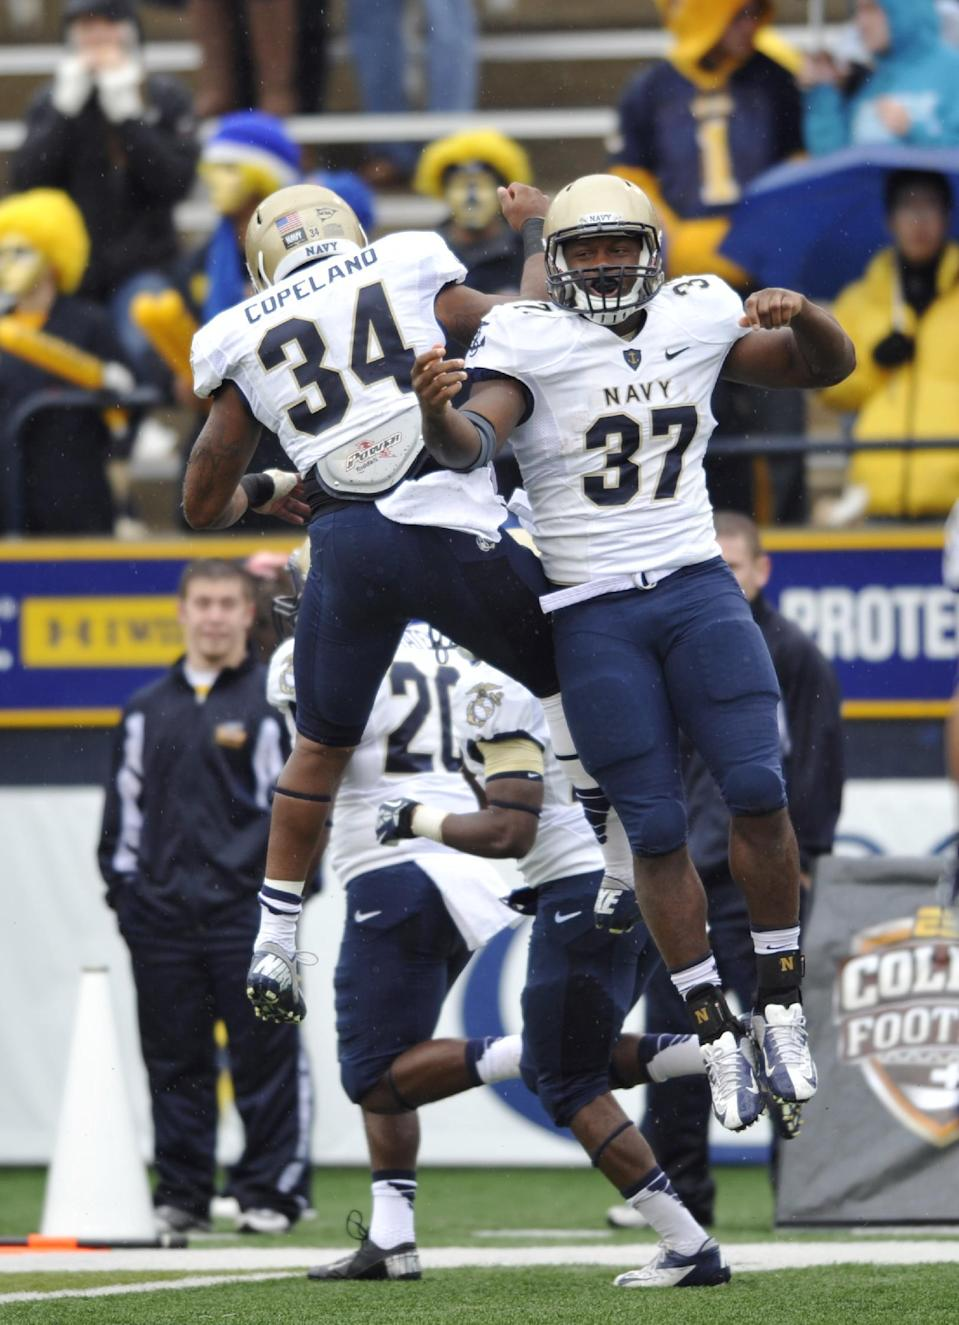 Navy fullback Chris Swain (37) celebrates his 2-yard touchdown run with fullback Noah Copeland during the first quarter of an NCAA college football game against Toledo in Toledo, Ohio, Saturday, Oct. 19, 2013. (AP Photo/David Richard)